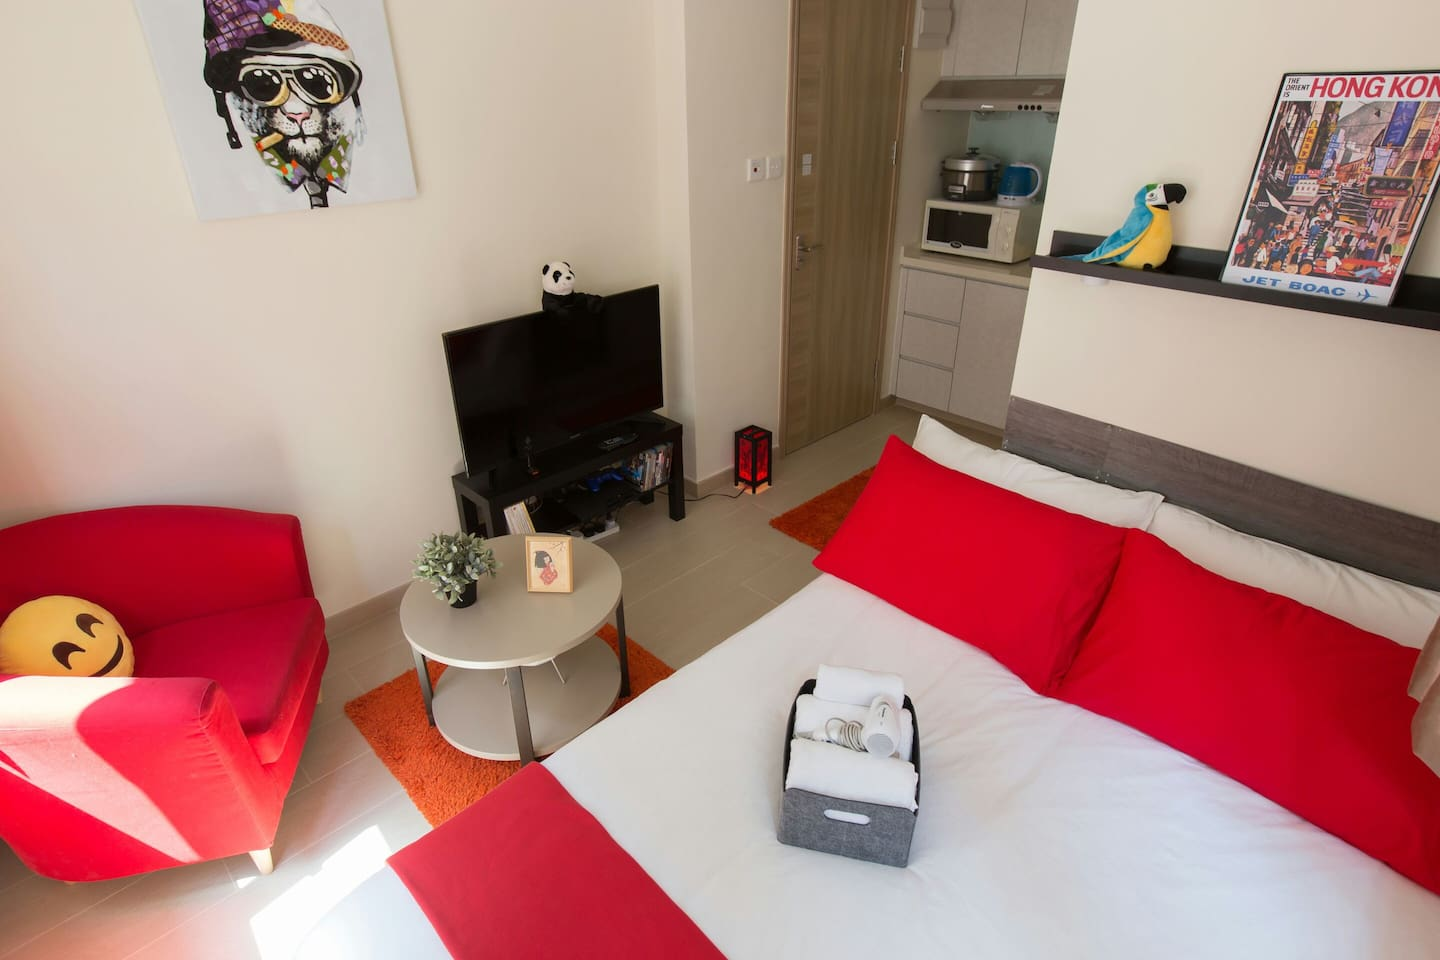 Welcome to my cute and cosy place, freshly renovated in modern style! I hope you will like it!